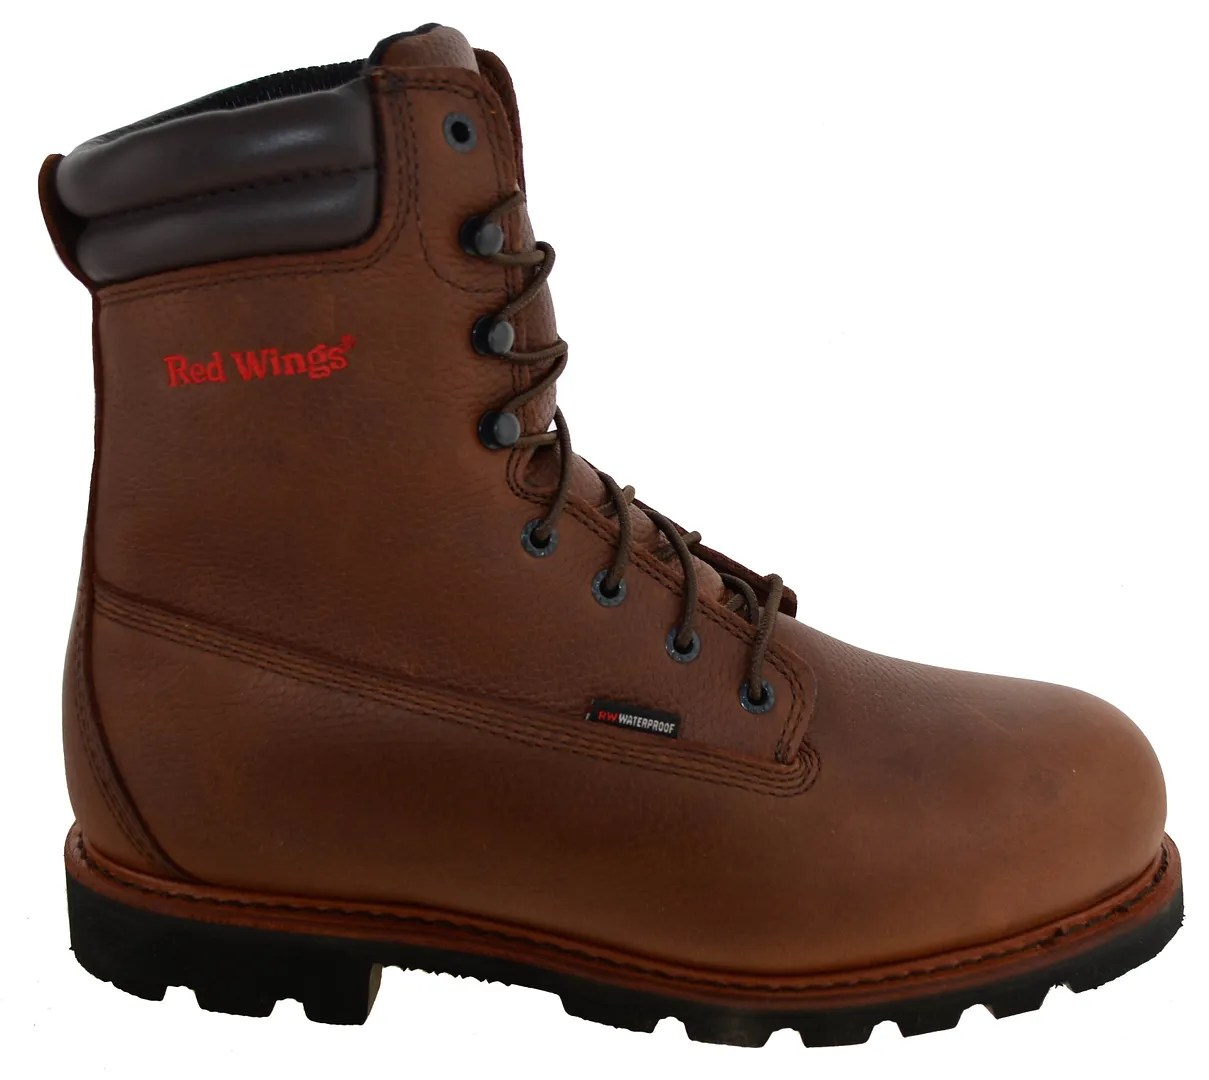 Mens Red Wing 6quot Insulated Waterproof Steel Toe Work Boots